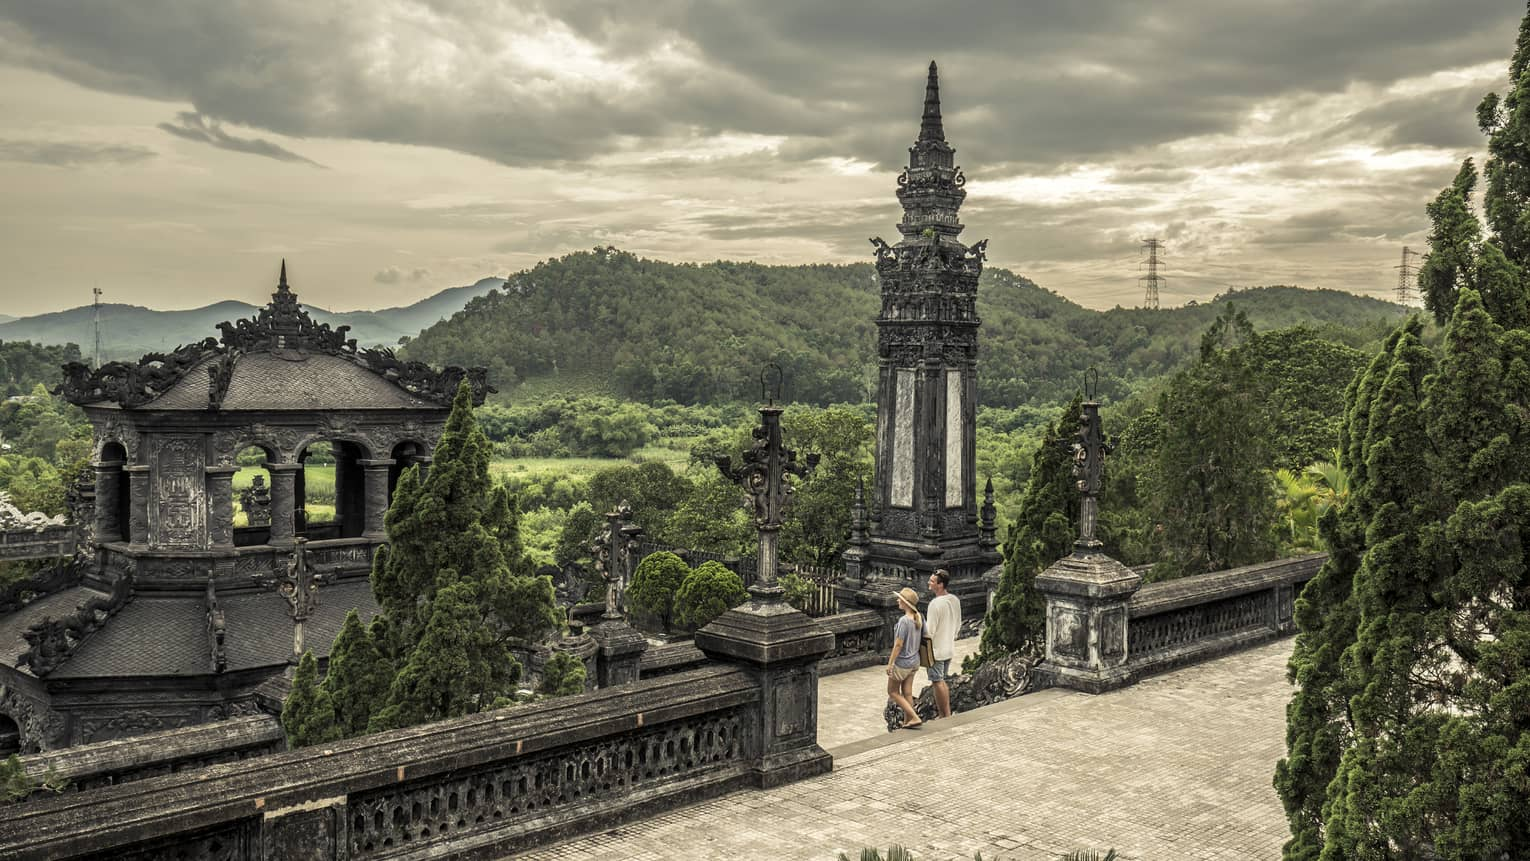 Man and woman walk down steps of historic Imperial City of Hue with stone towers, rolling hills